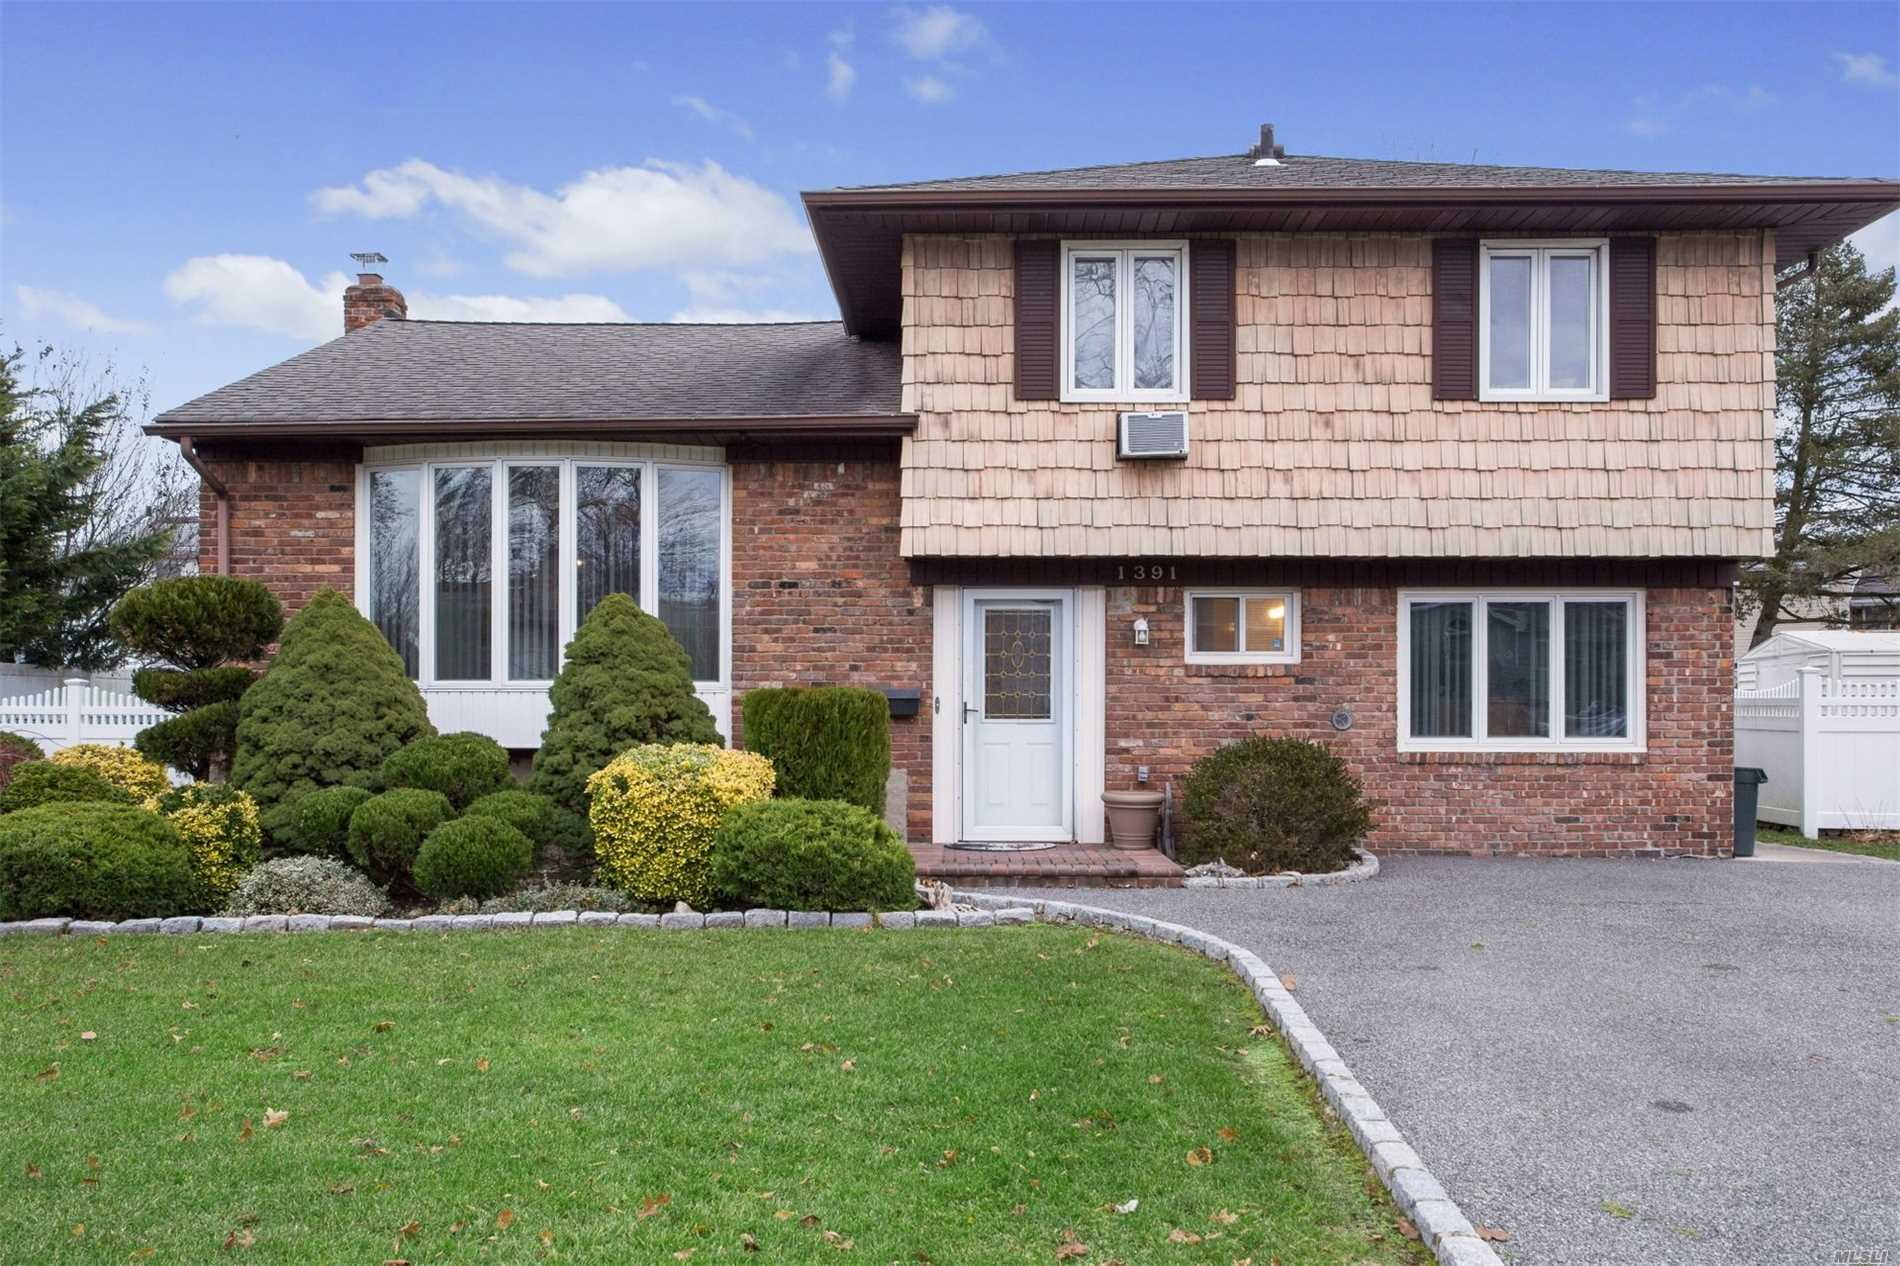 Welcome to this 3 Bedroom Oversized Split Featuring Hardwood Floors, An Open Floor Plan With Large Oversized Island In Kitchen, Living Room & Dining Room, Sunken Den With Large Fireplace, Office On Main Level With .5Bath, Upgraded Electric, Plenty Of Storage, Finished Basement, Beautifully Landscaped with Deck and Privacy and Disirable Wantagh Schools-Forest Lake Elementary.